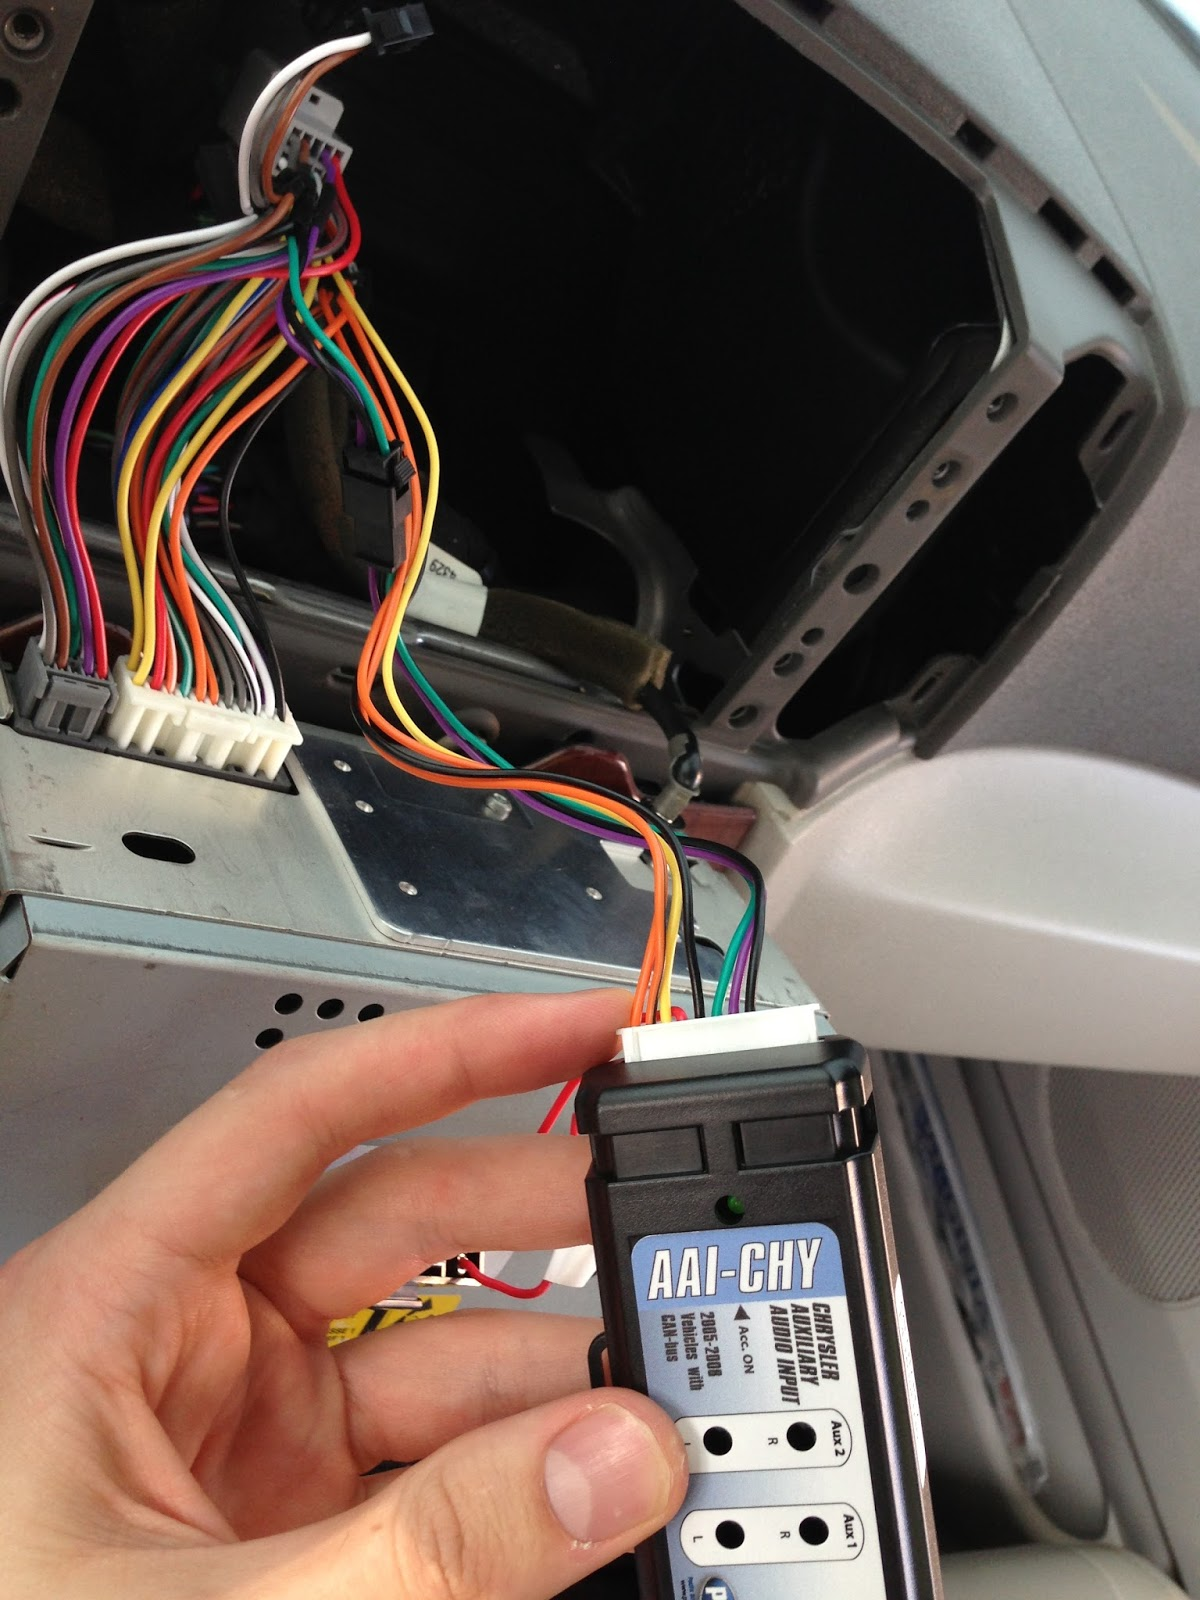 How Do I Install My Own Car Stereo Wiring With Pictures